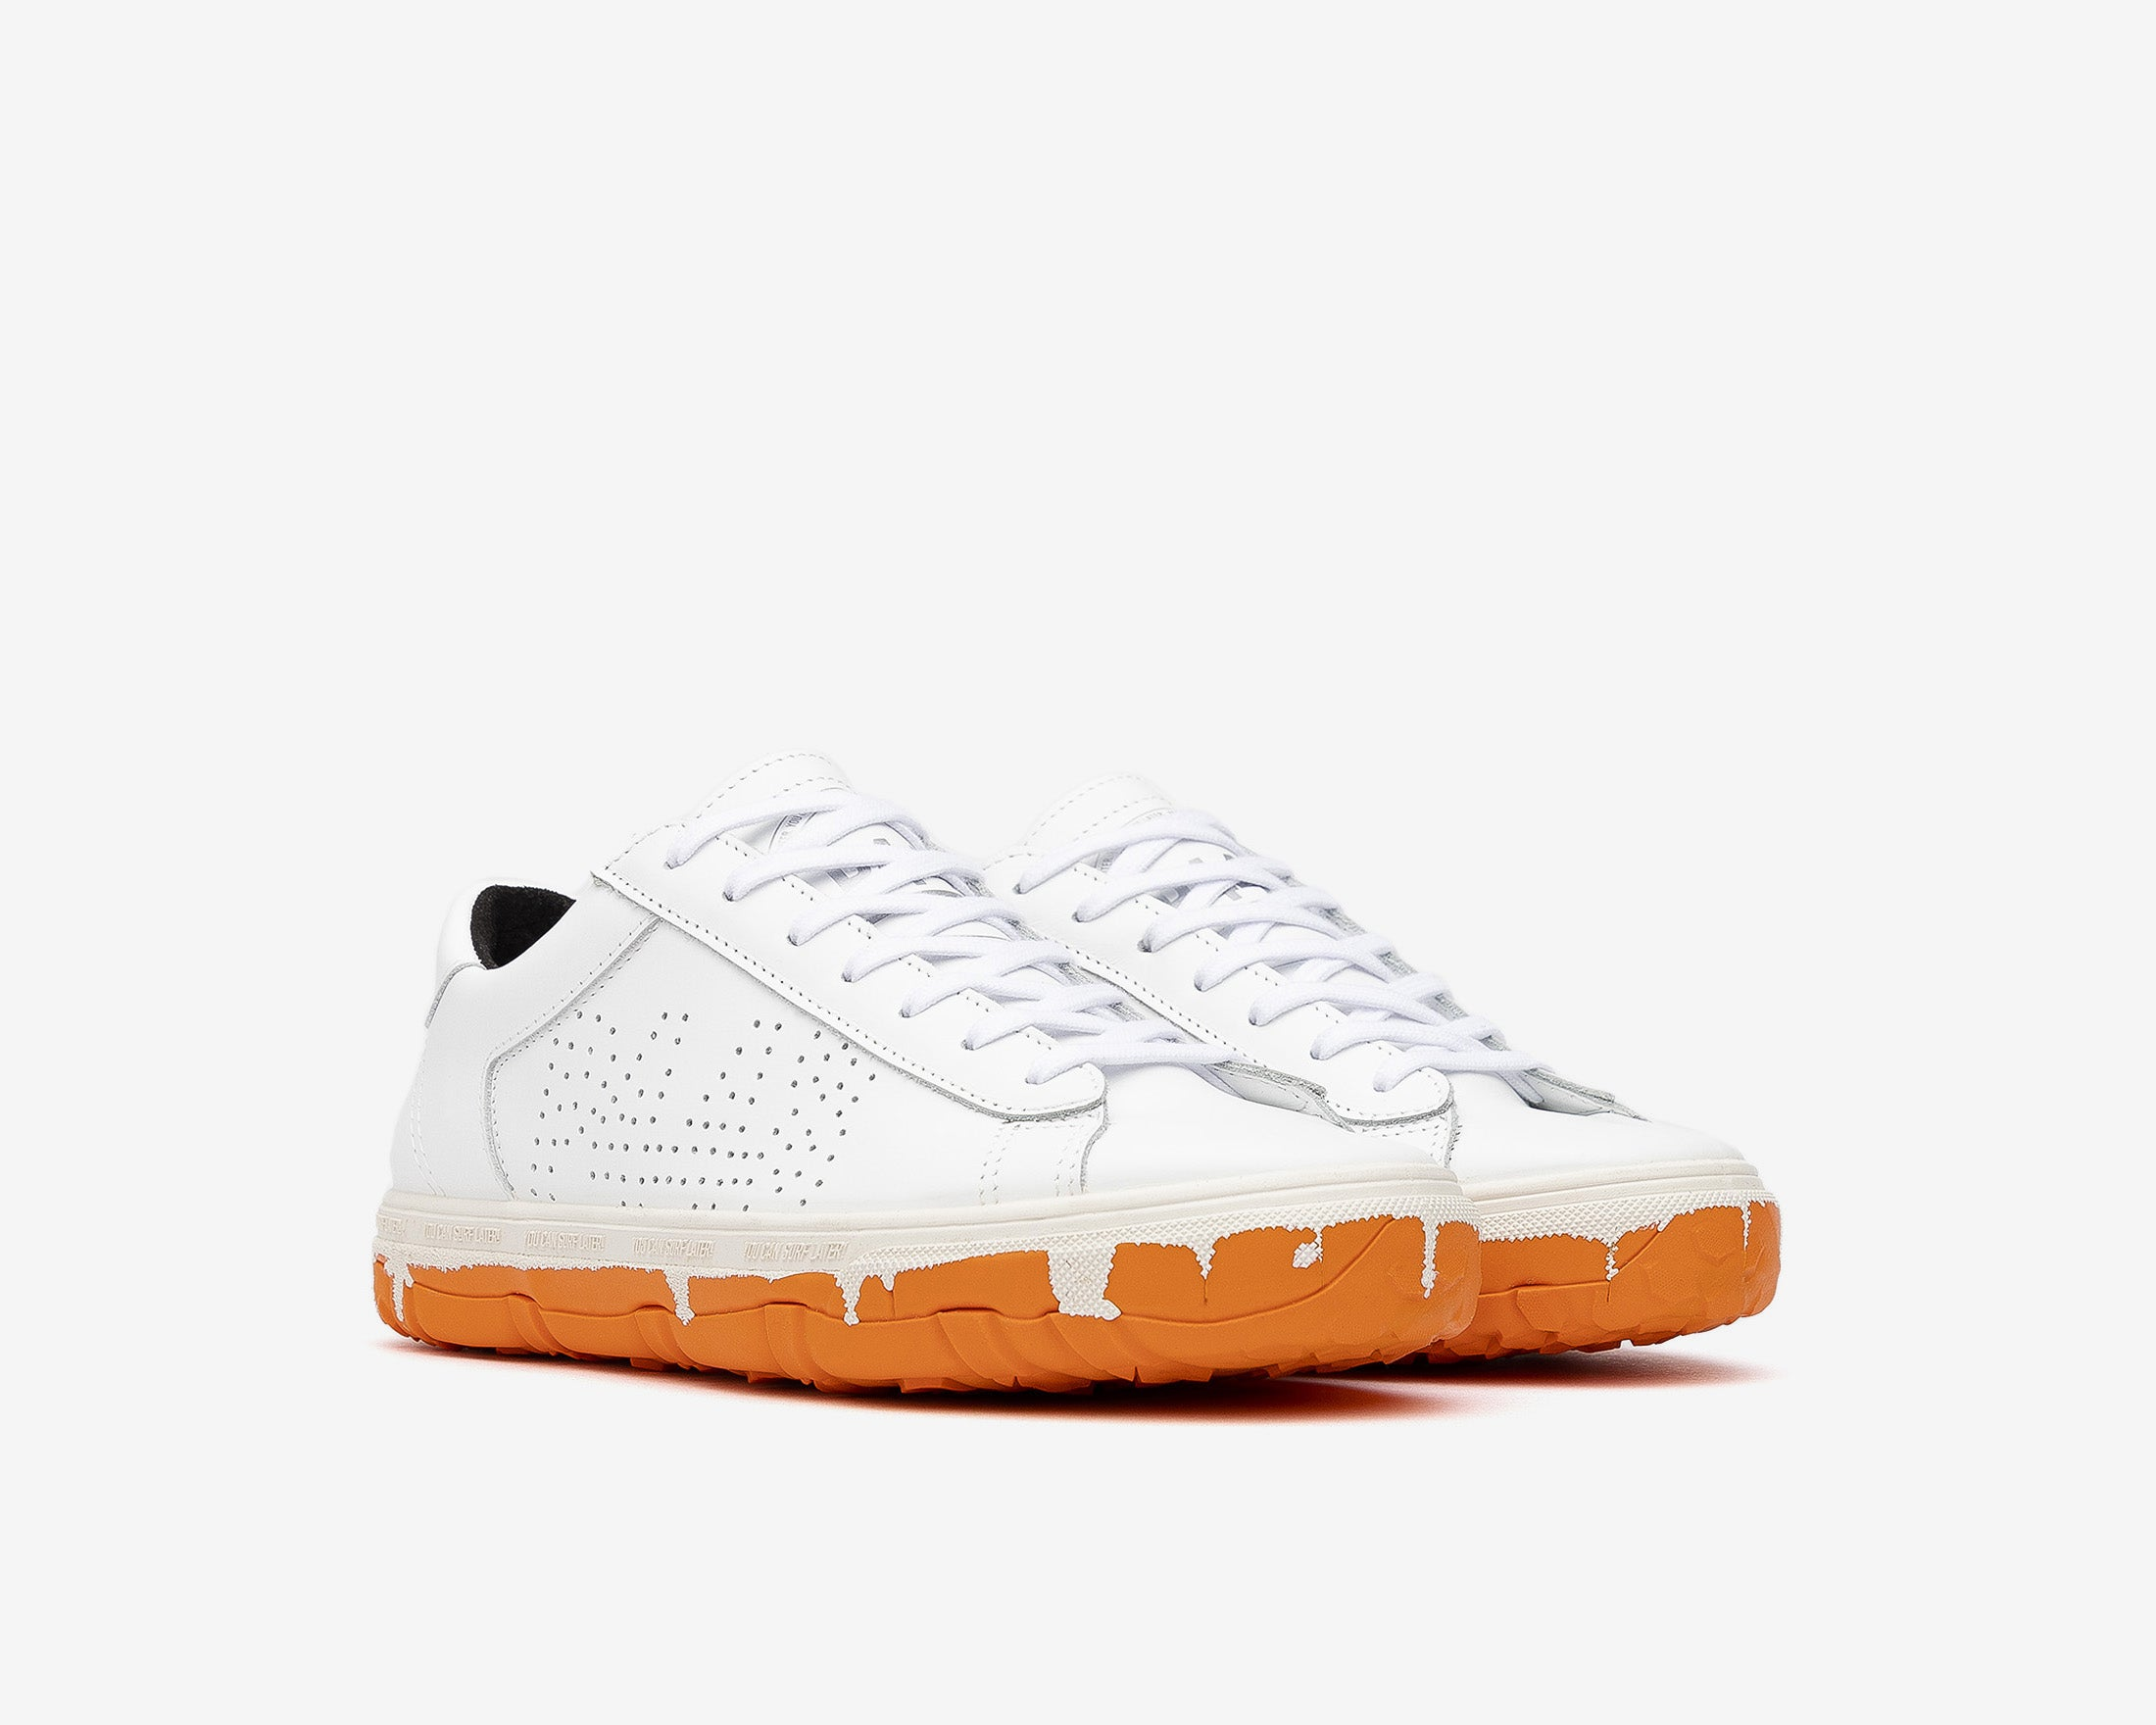 Y.C.S.L. Vibram Low-Top Sneaker in White/Orange - Side